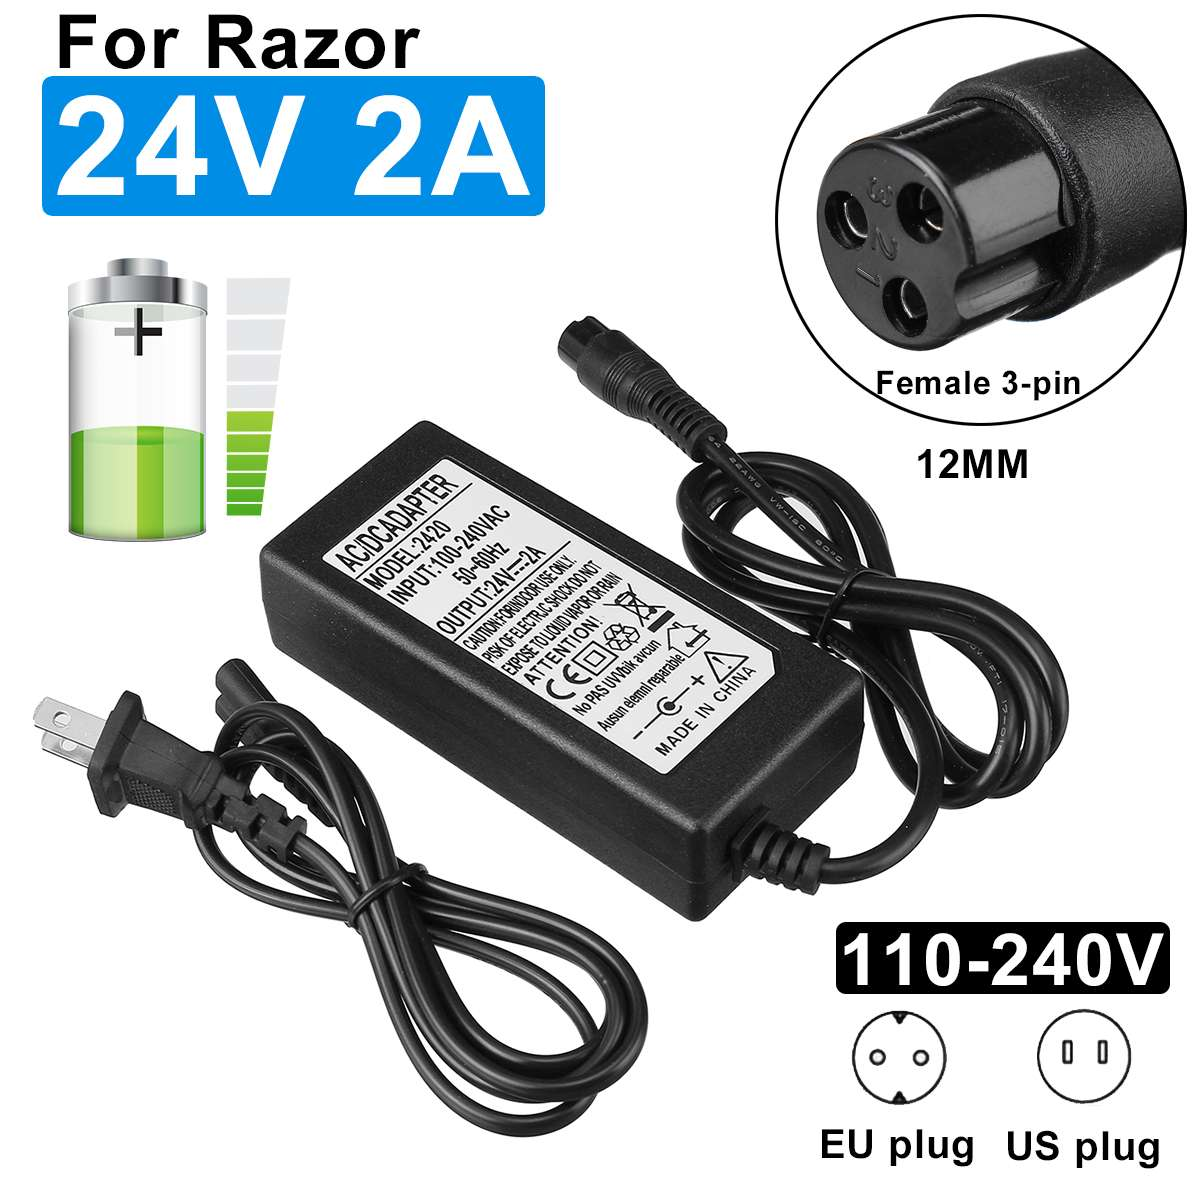 24V 2A Electric Scooter Battery Charger Fr RAZOR E100 E200 E300 E125 E150 E500 For Razor Charger Connector Adapter